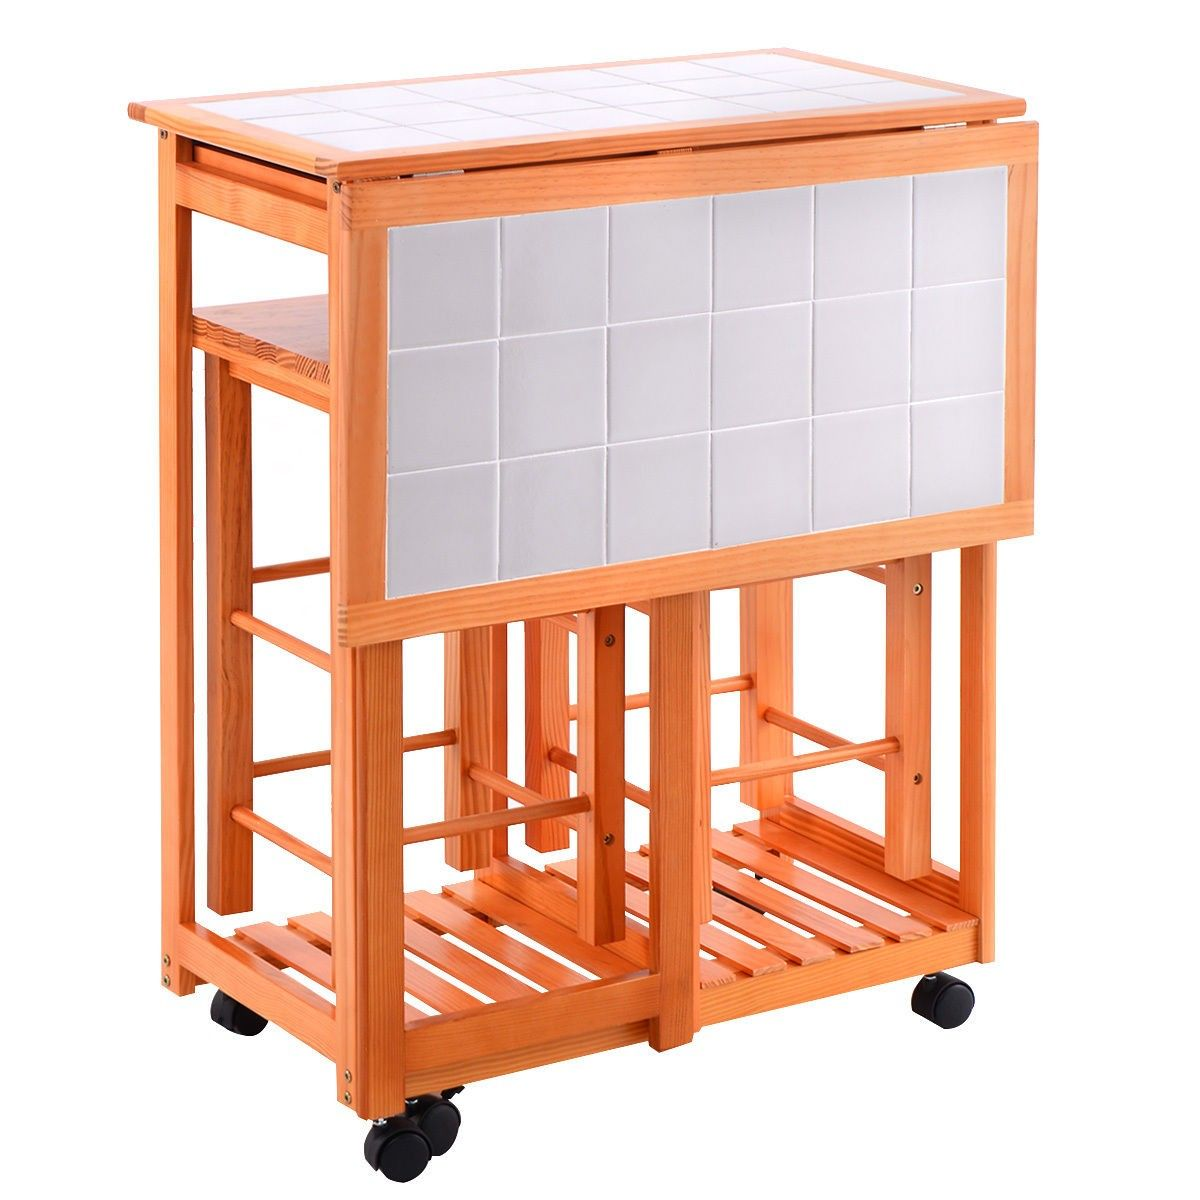 Rolling Kitchen Island Trolley Cart Drop Leaf Table w/ 2 Stools Home ...